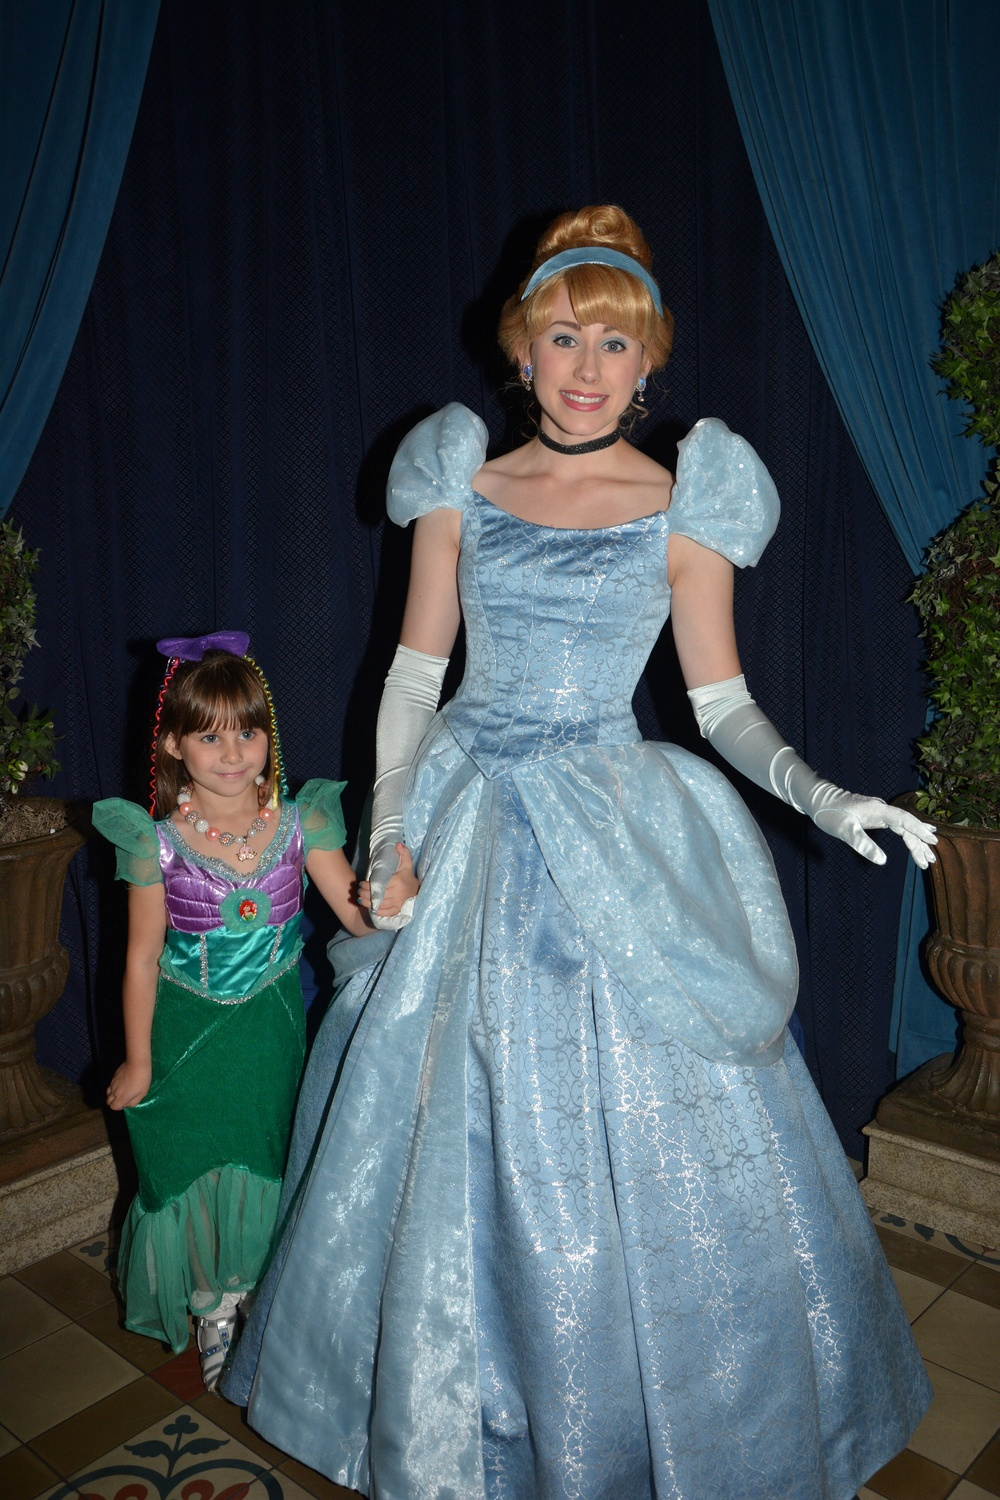 Emery meeting Cinderella as we Entered Cinderella's Castle